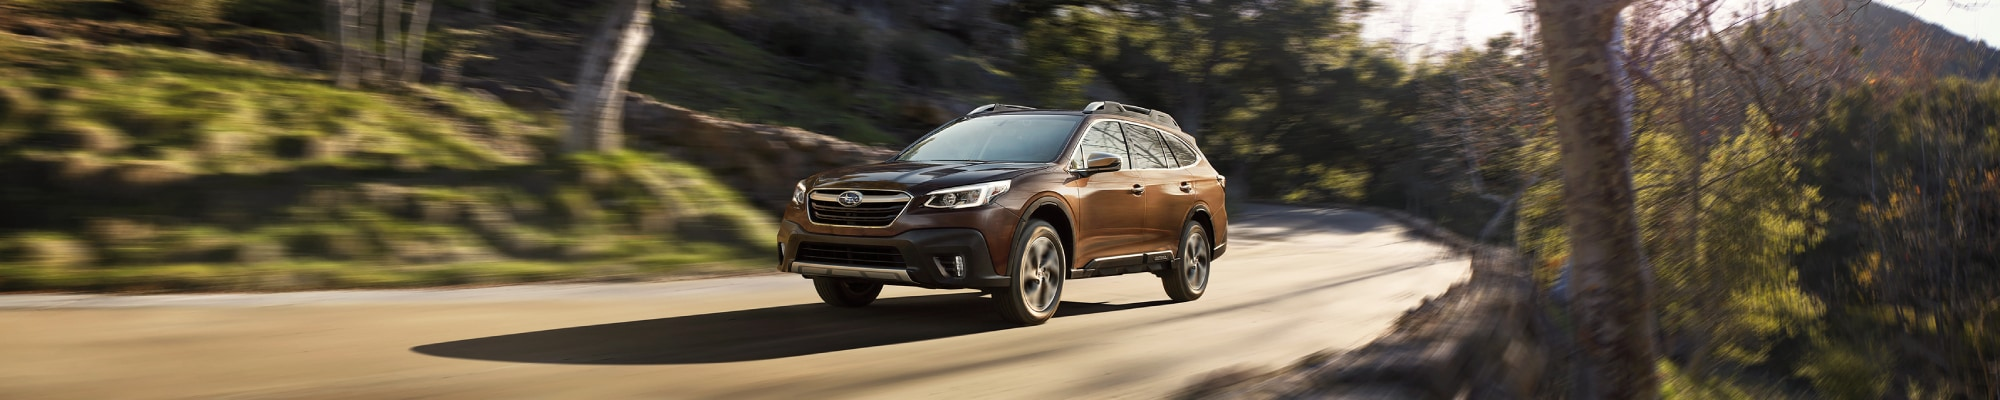 All New Subaru Outback driving on the road